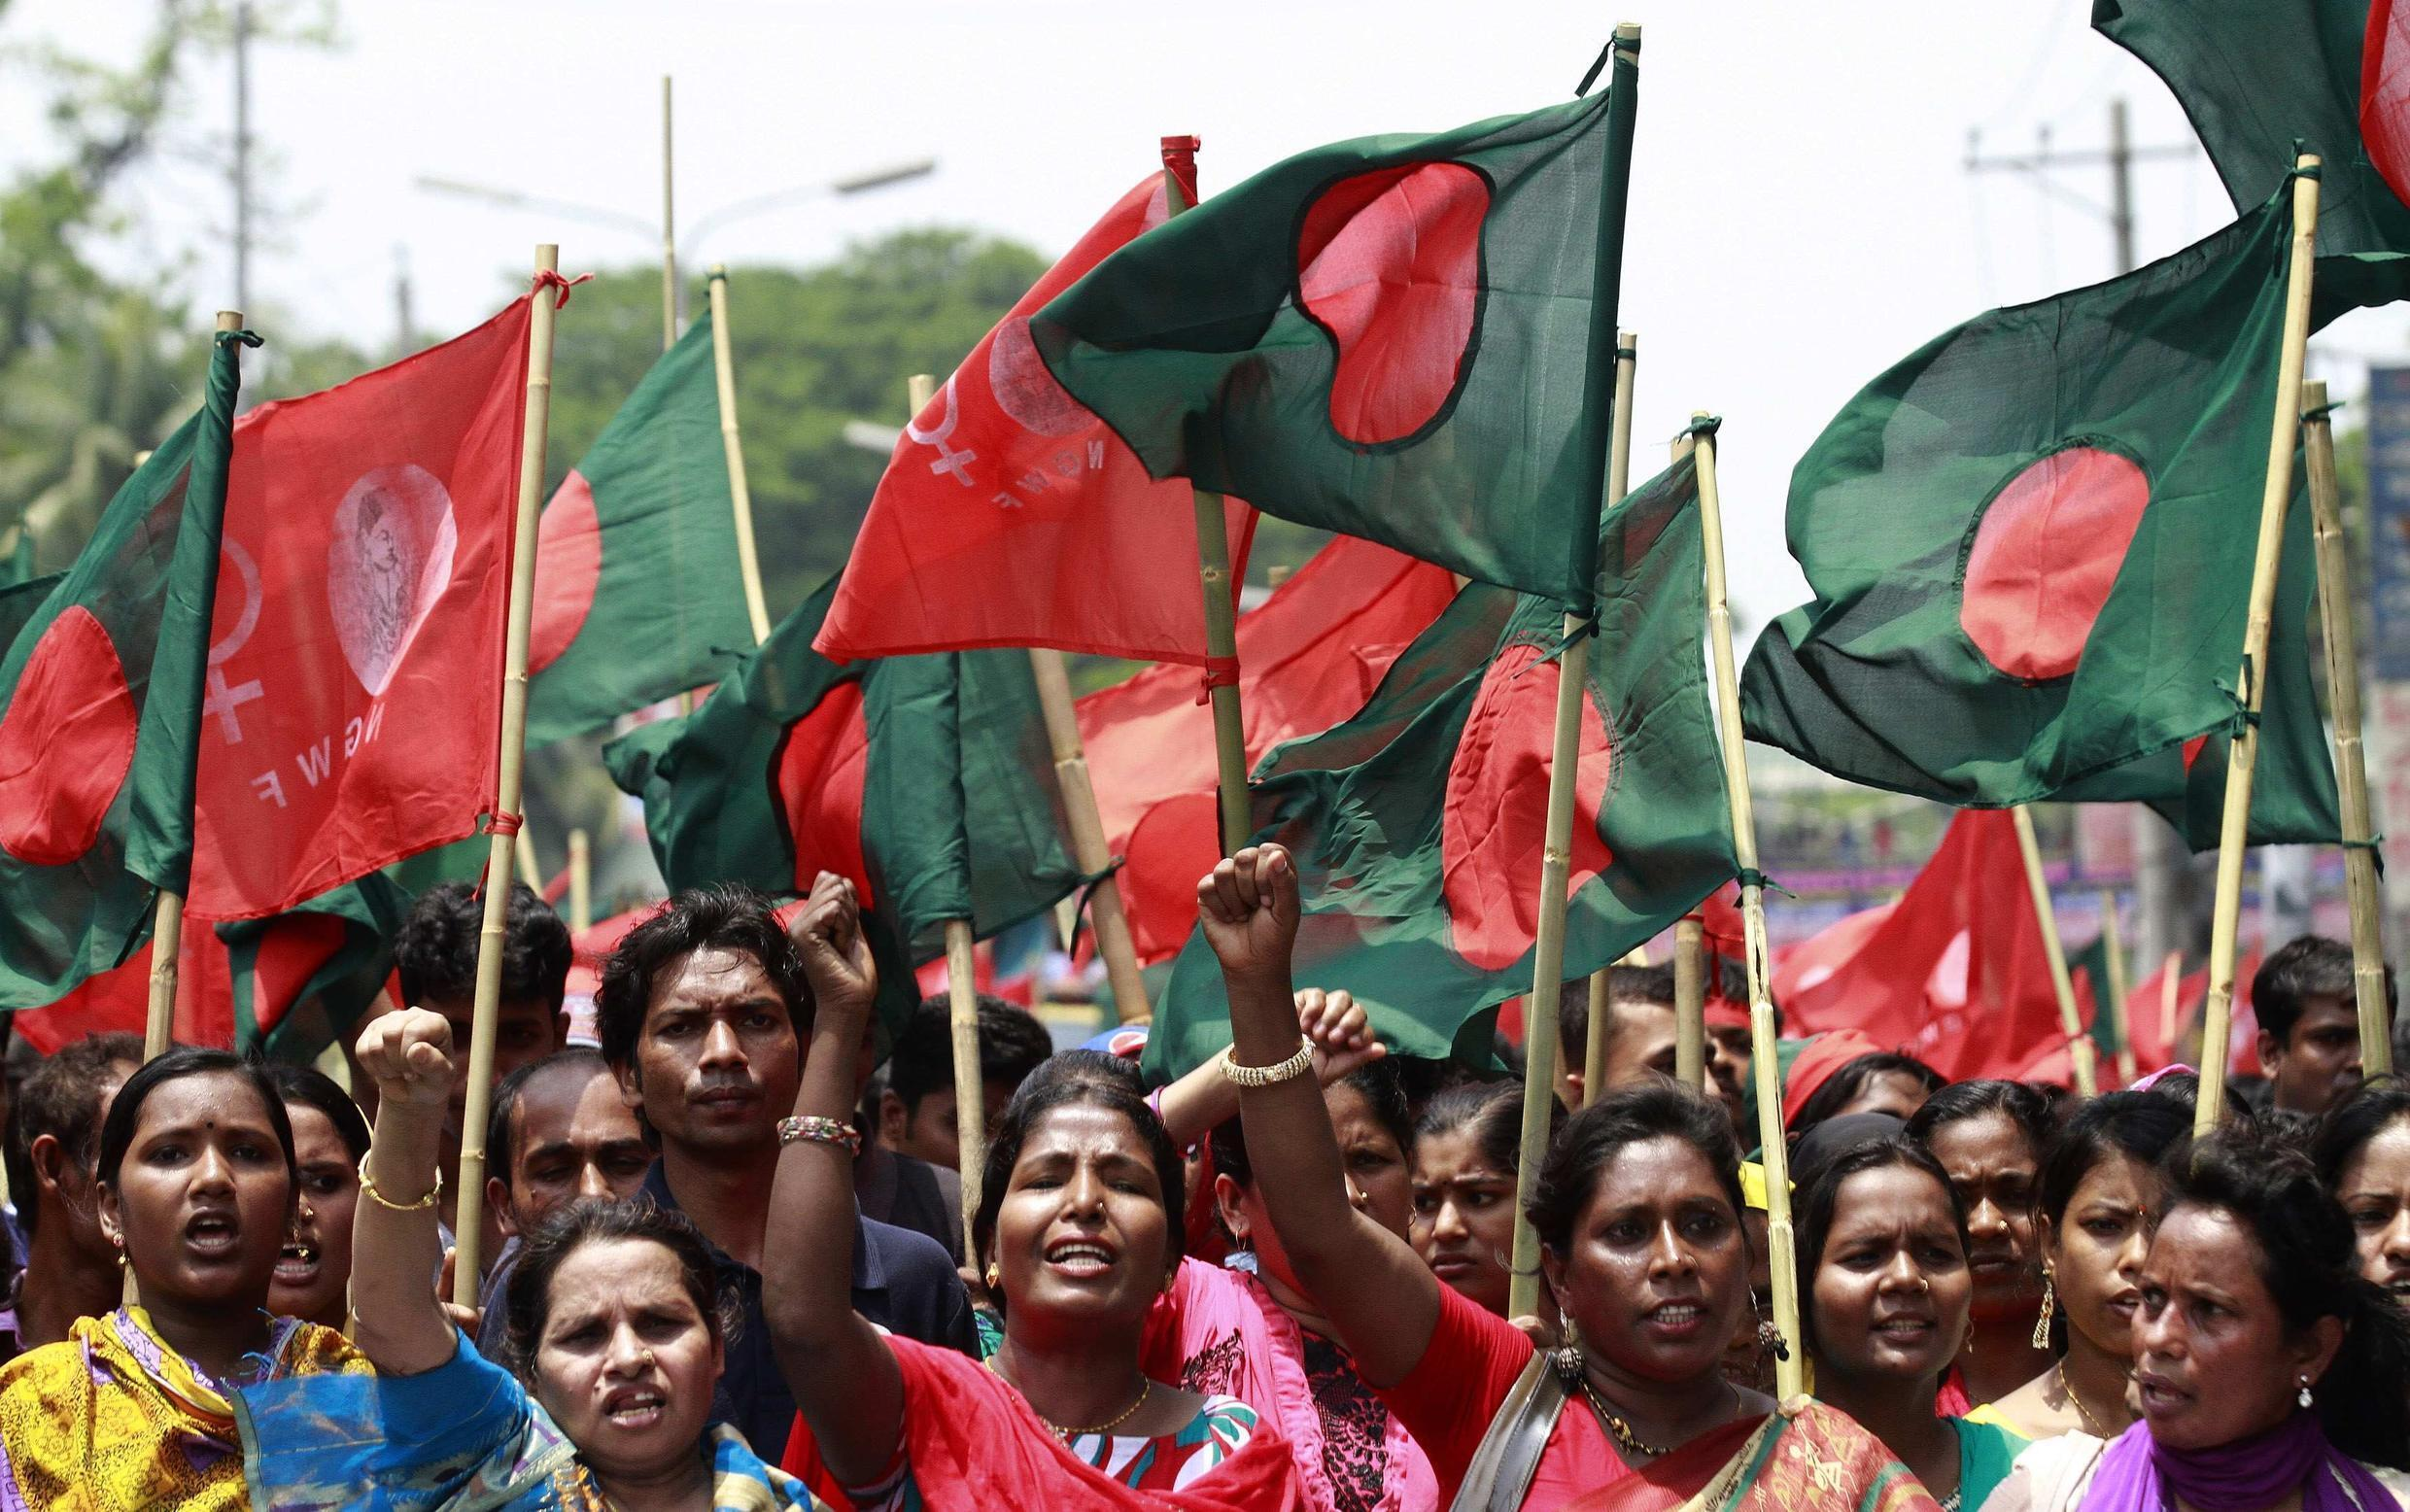 Bangladeshi textile workers demand compensation for victims of the Rana Plaza disaster on a May Day march in Dhaka